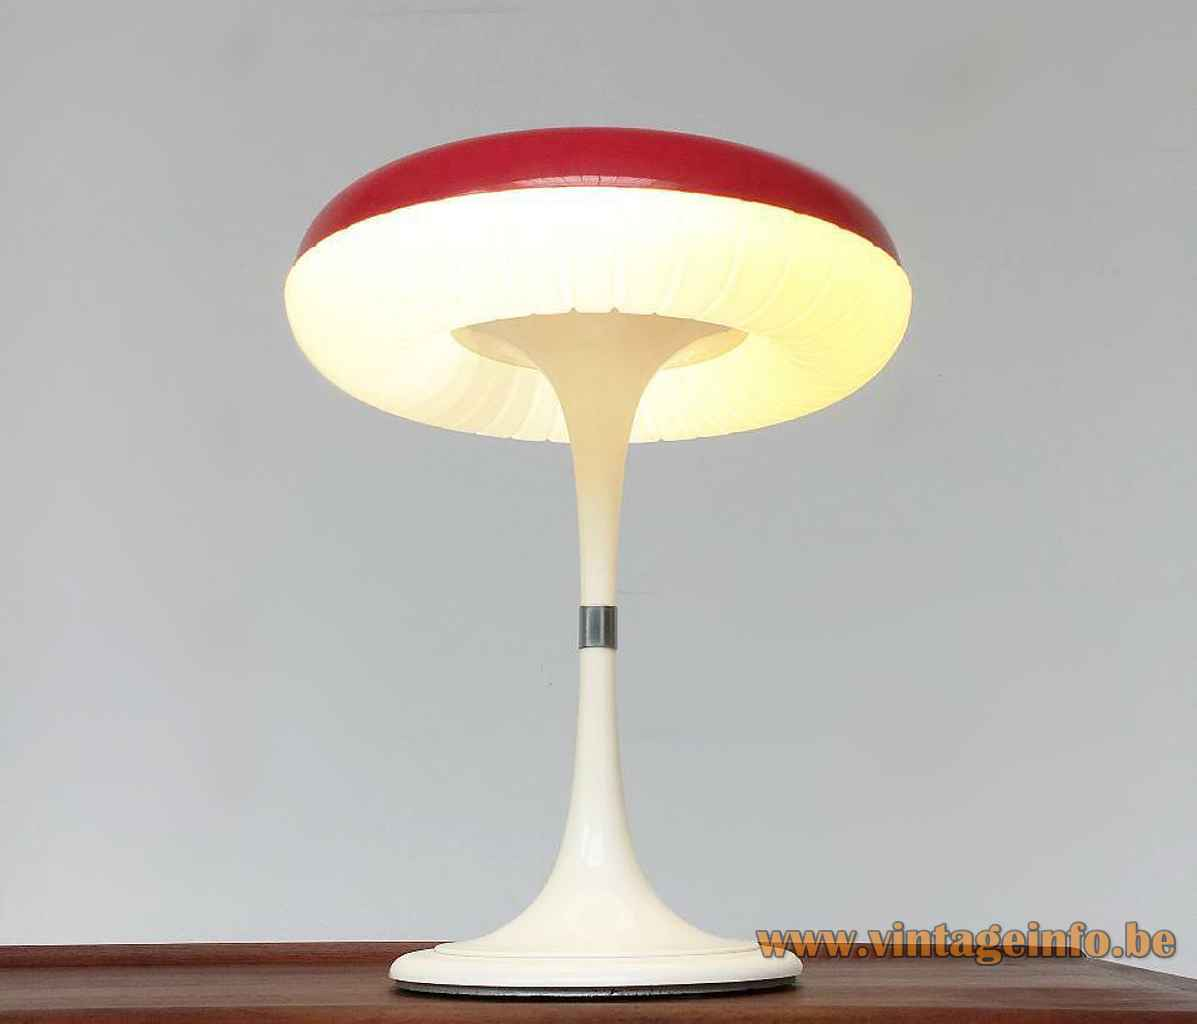 Siemens Siform table lamp round white plastic base & rod red mushroom lampshade 1970s Germany circular-fluorescent tube